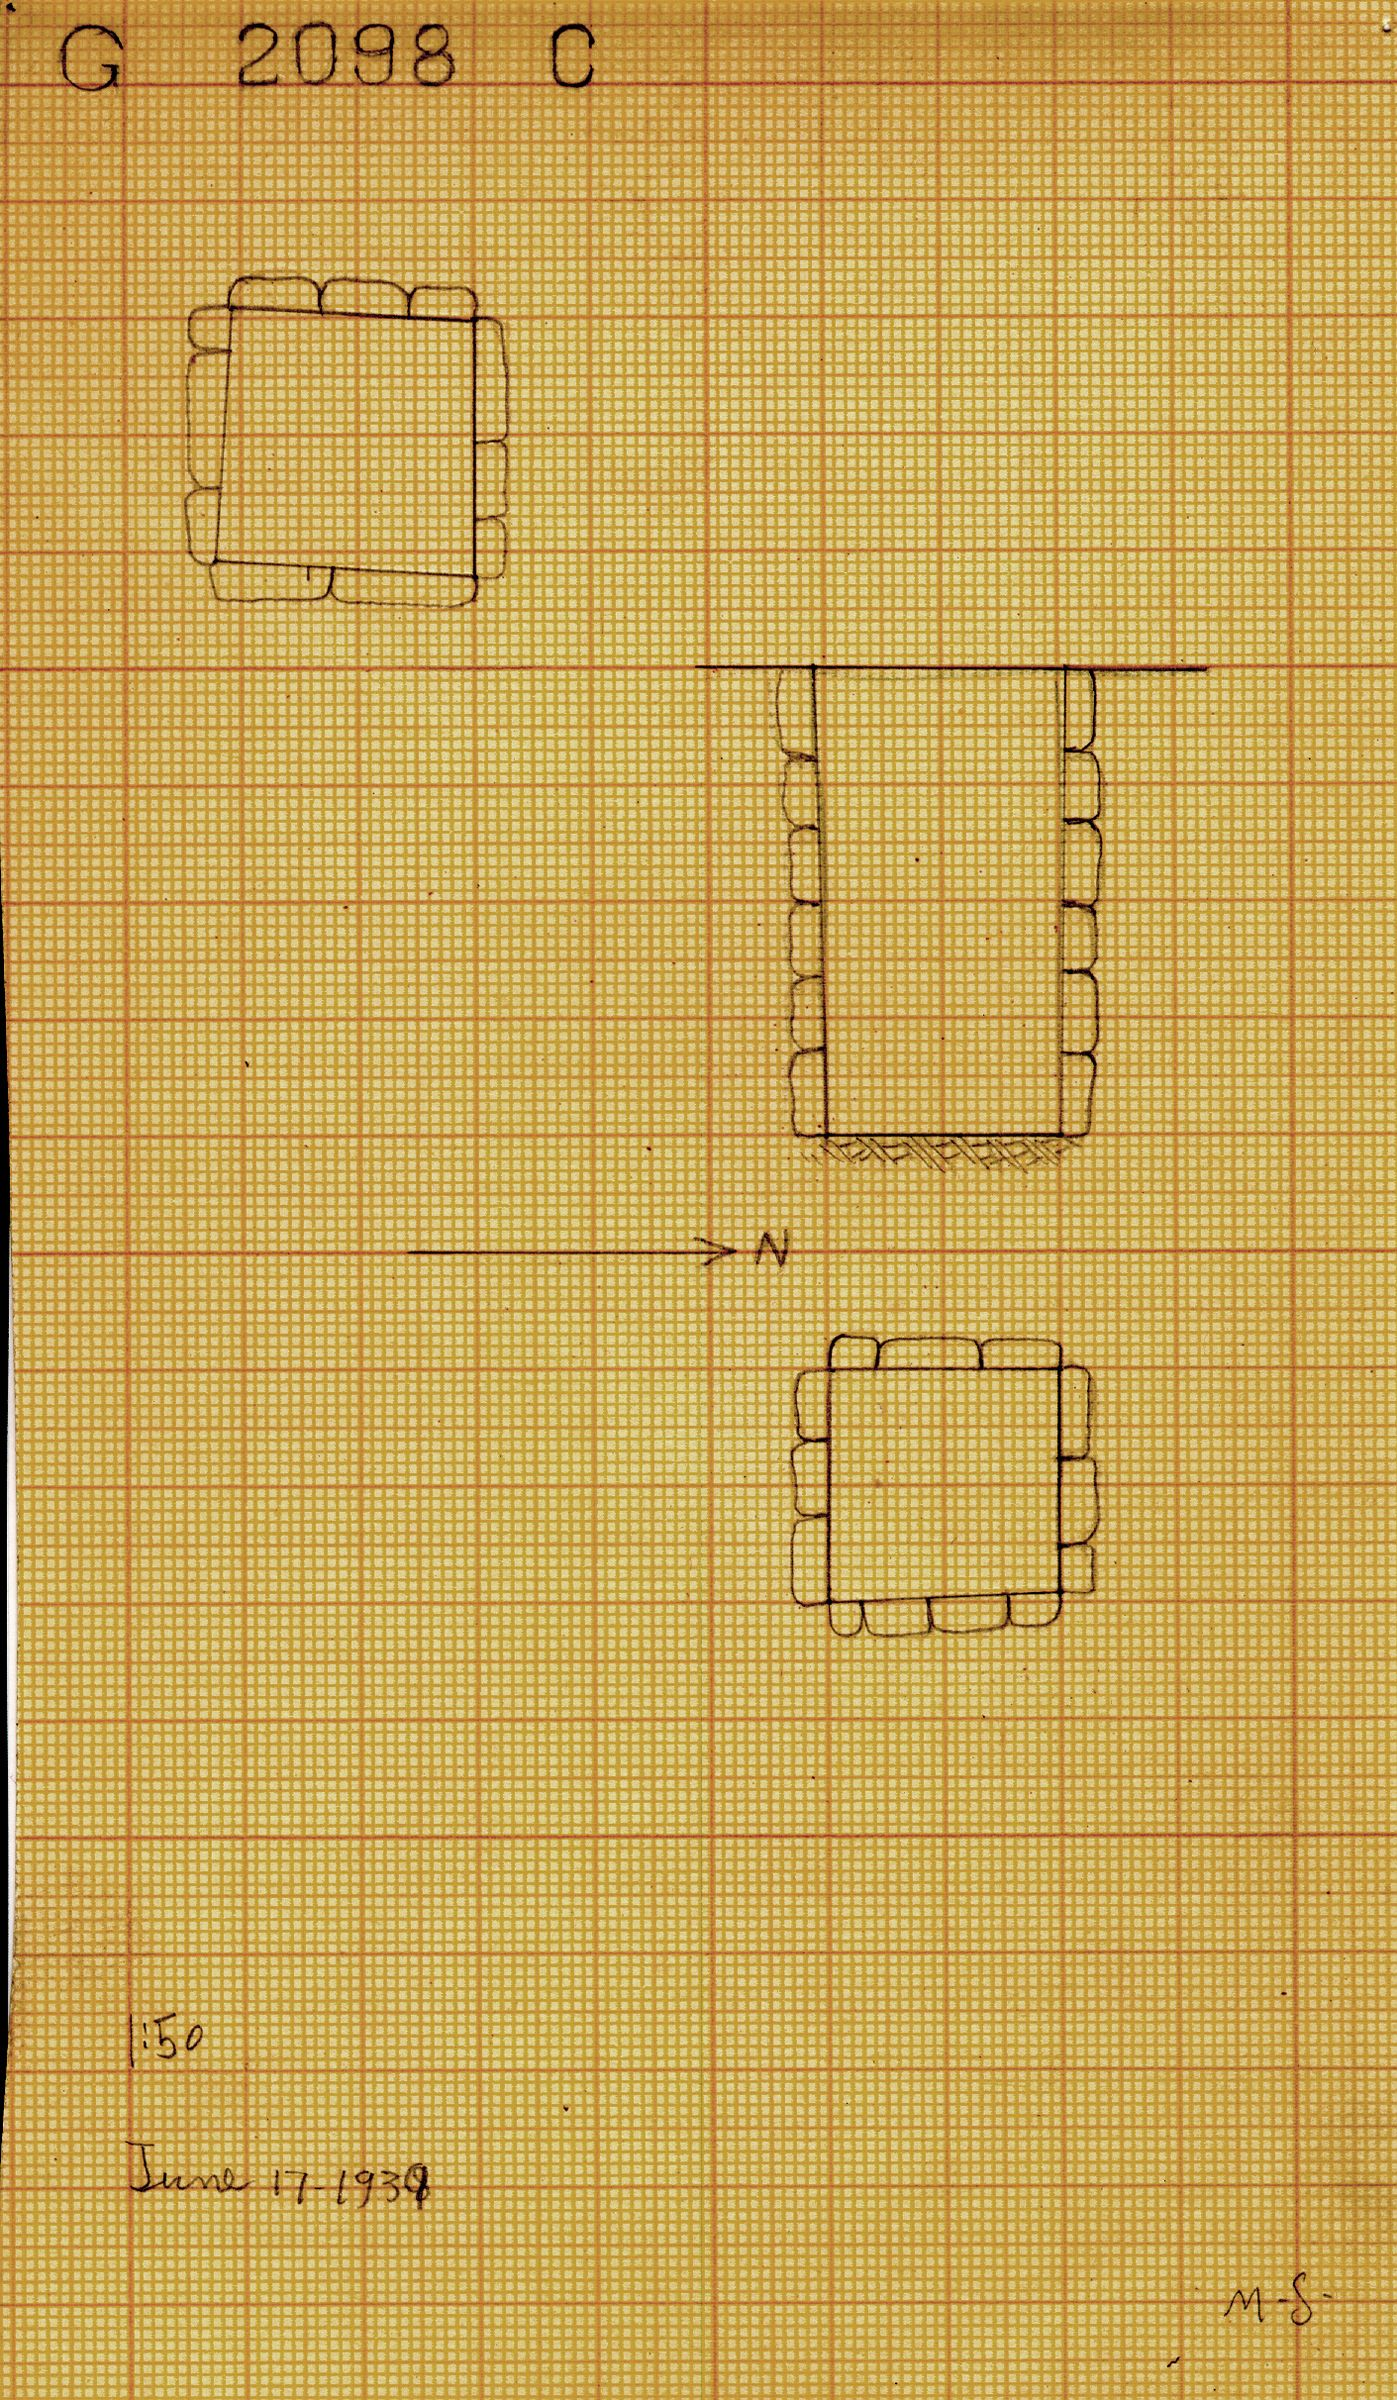 Maps and plans: G 2098, Shaft C